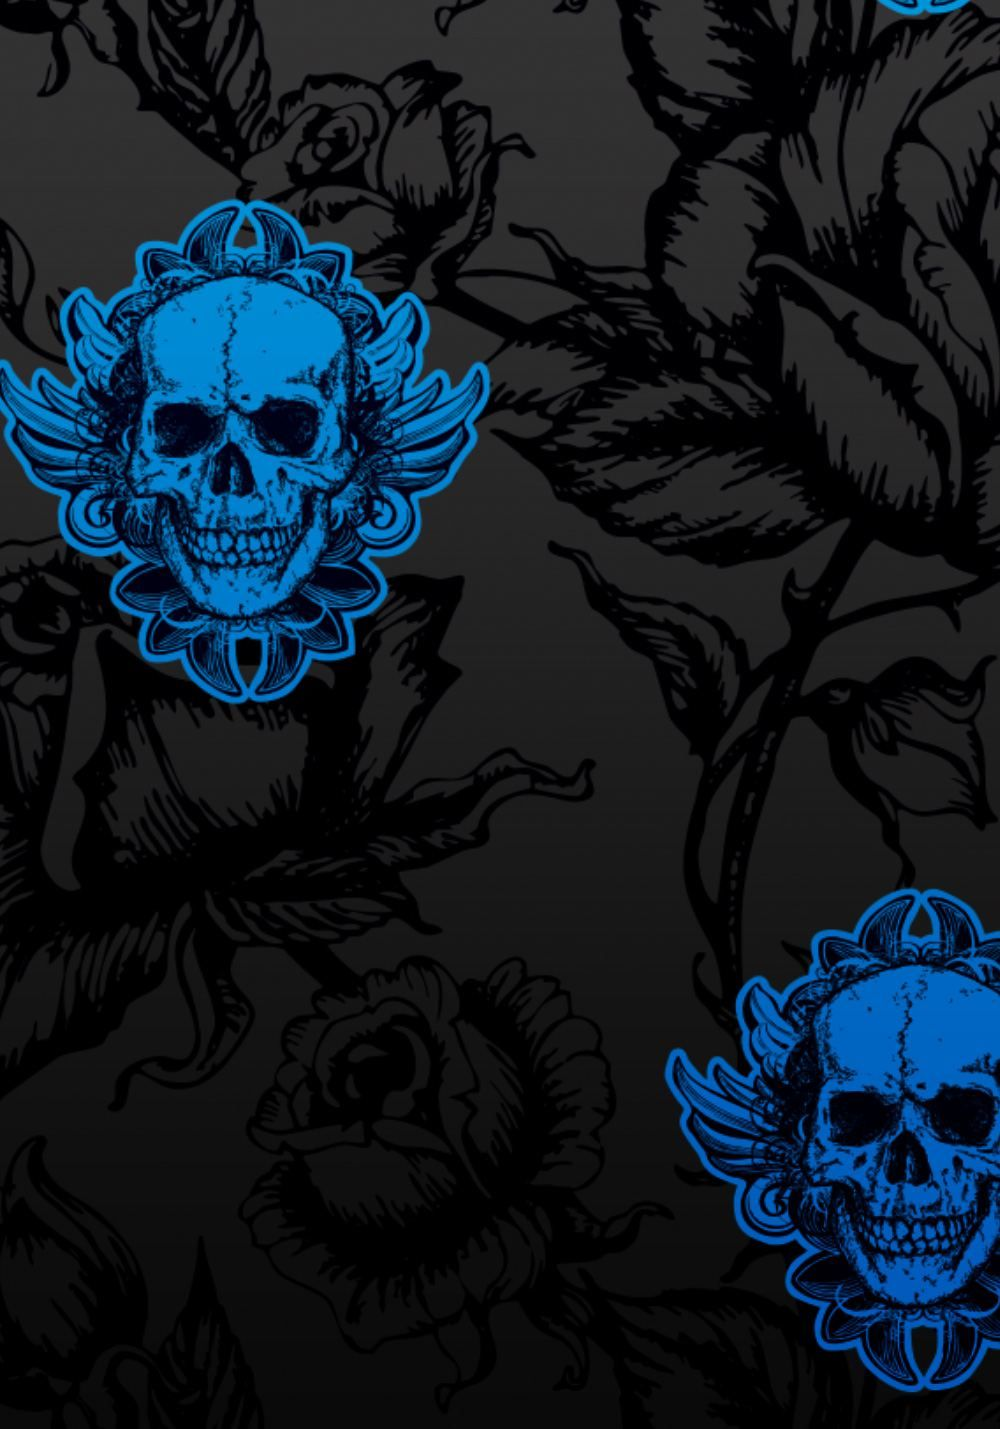 Large Winged Skull Wallpaper | Skull Gallery | Pinterest